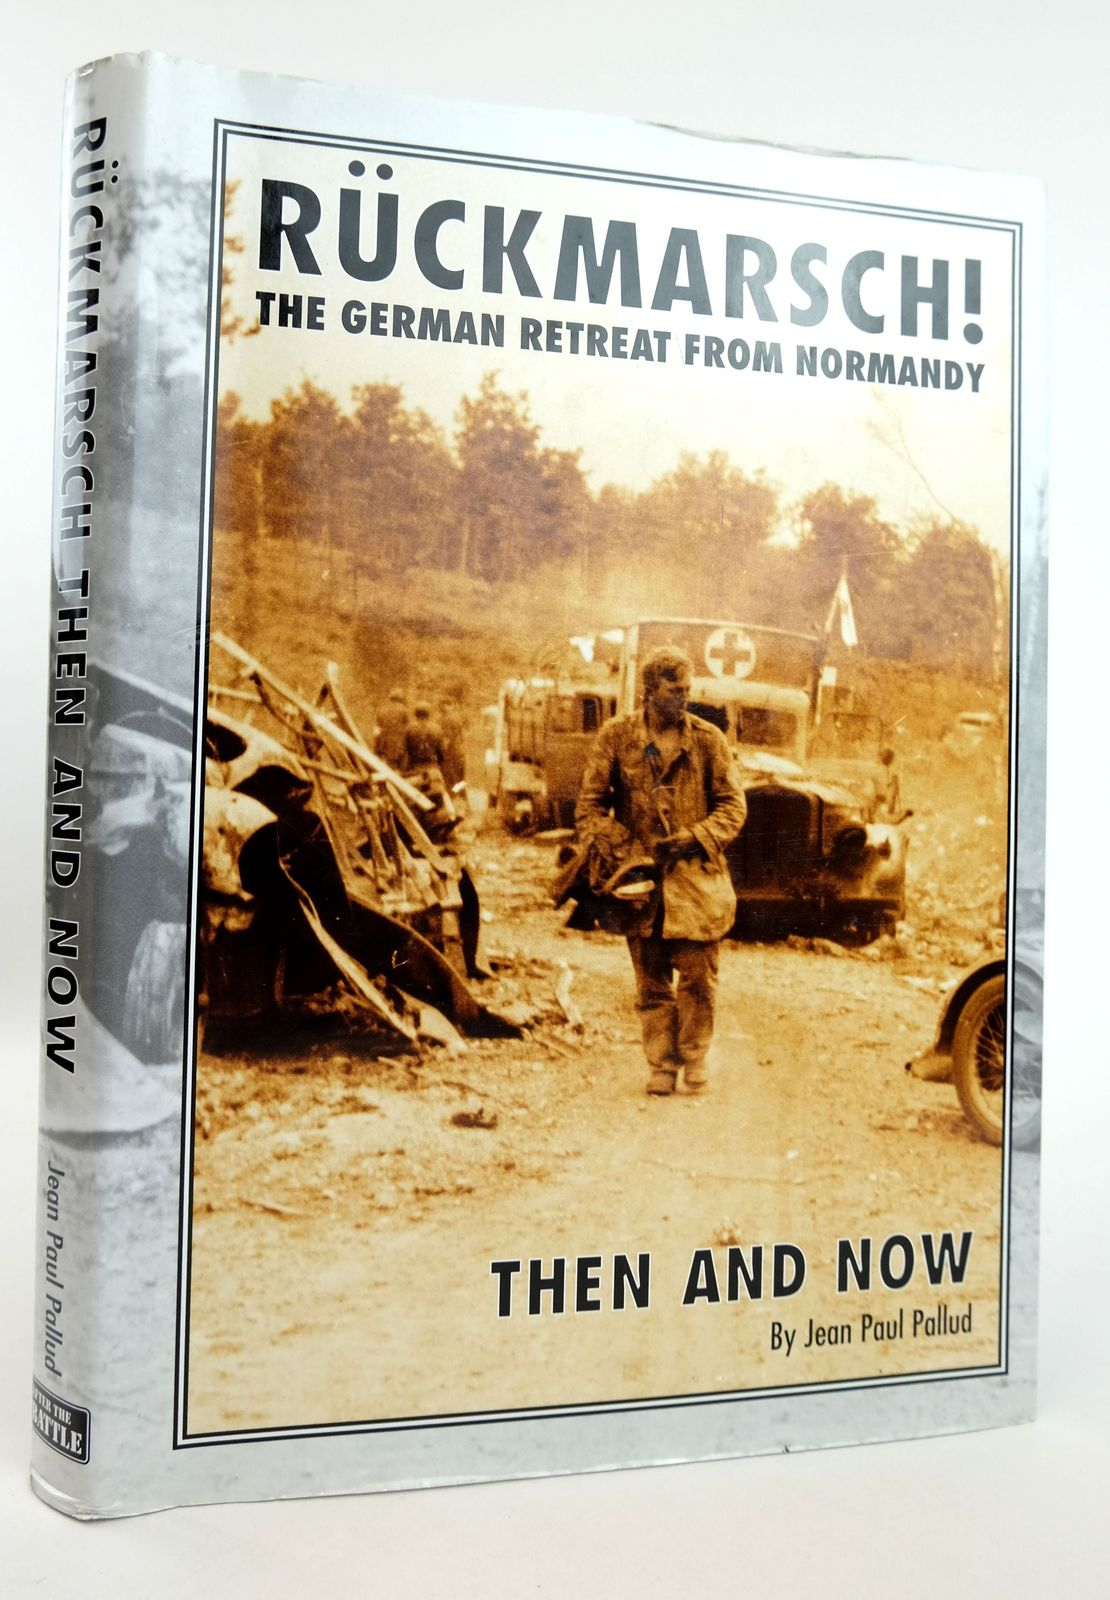 Photo of RUCKMARSCH! THE GERMAN RETREAT FROM NORMANDY THEN AND NOW written by Pallud, Jean Paul published by Battle Of Britain International Limited (STOCK CODE: 1819021)  for sale by Stella & Rose's Books